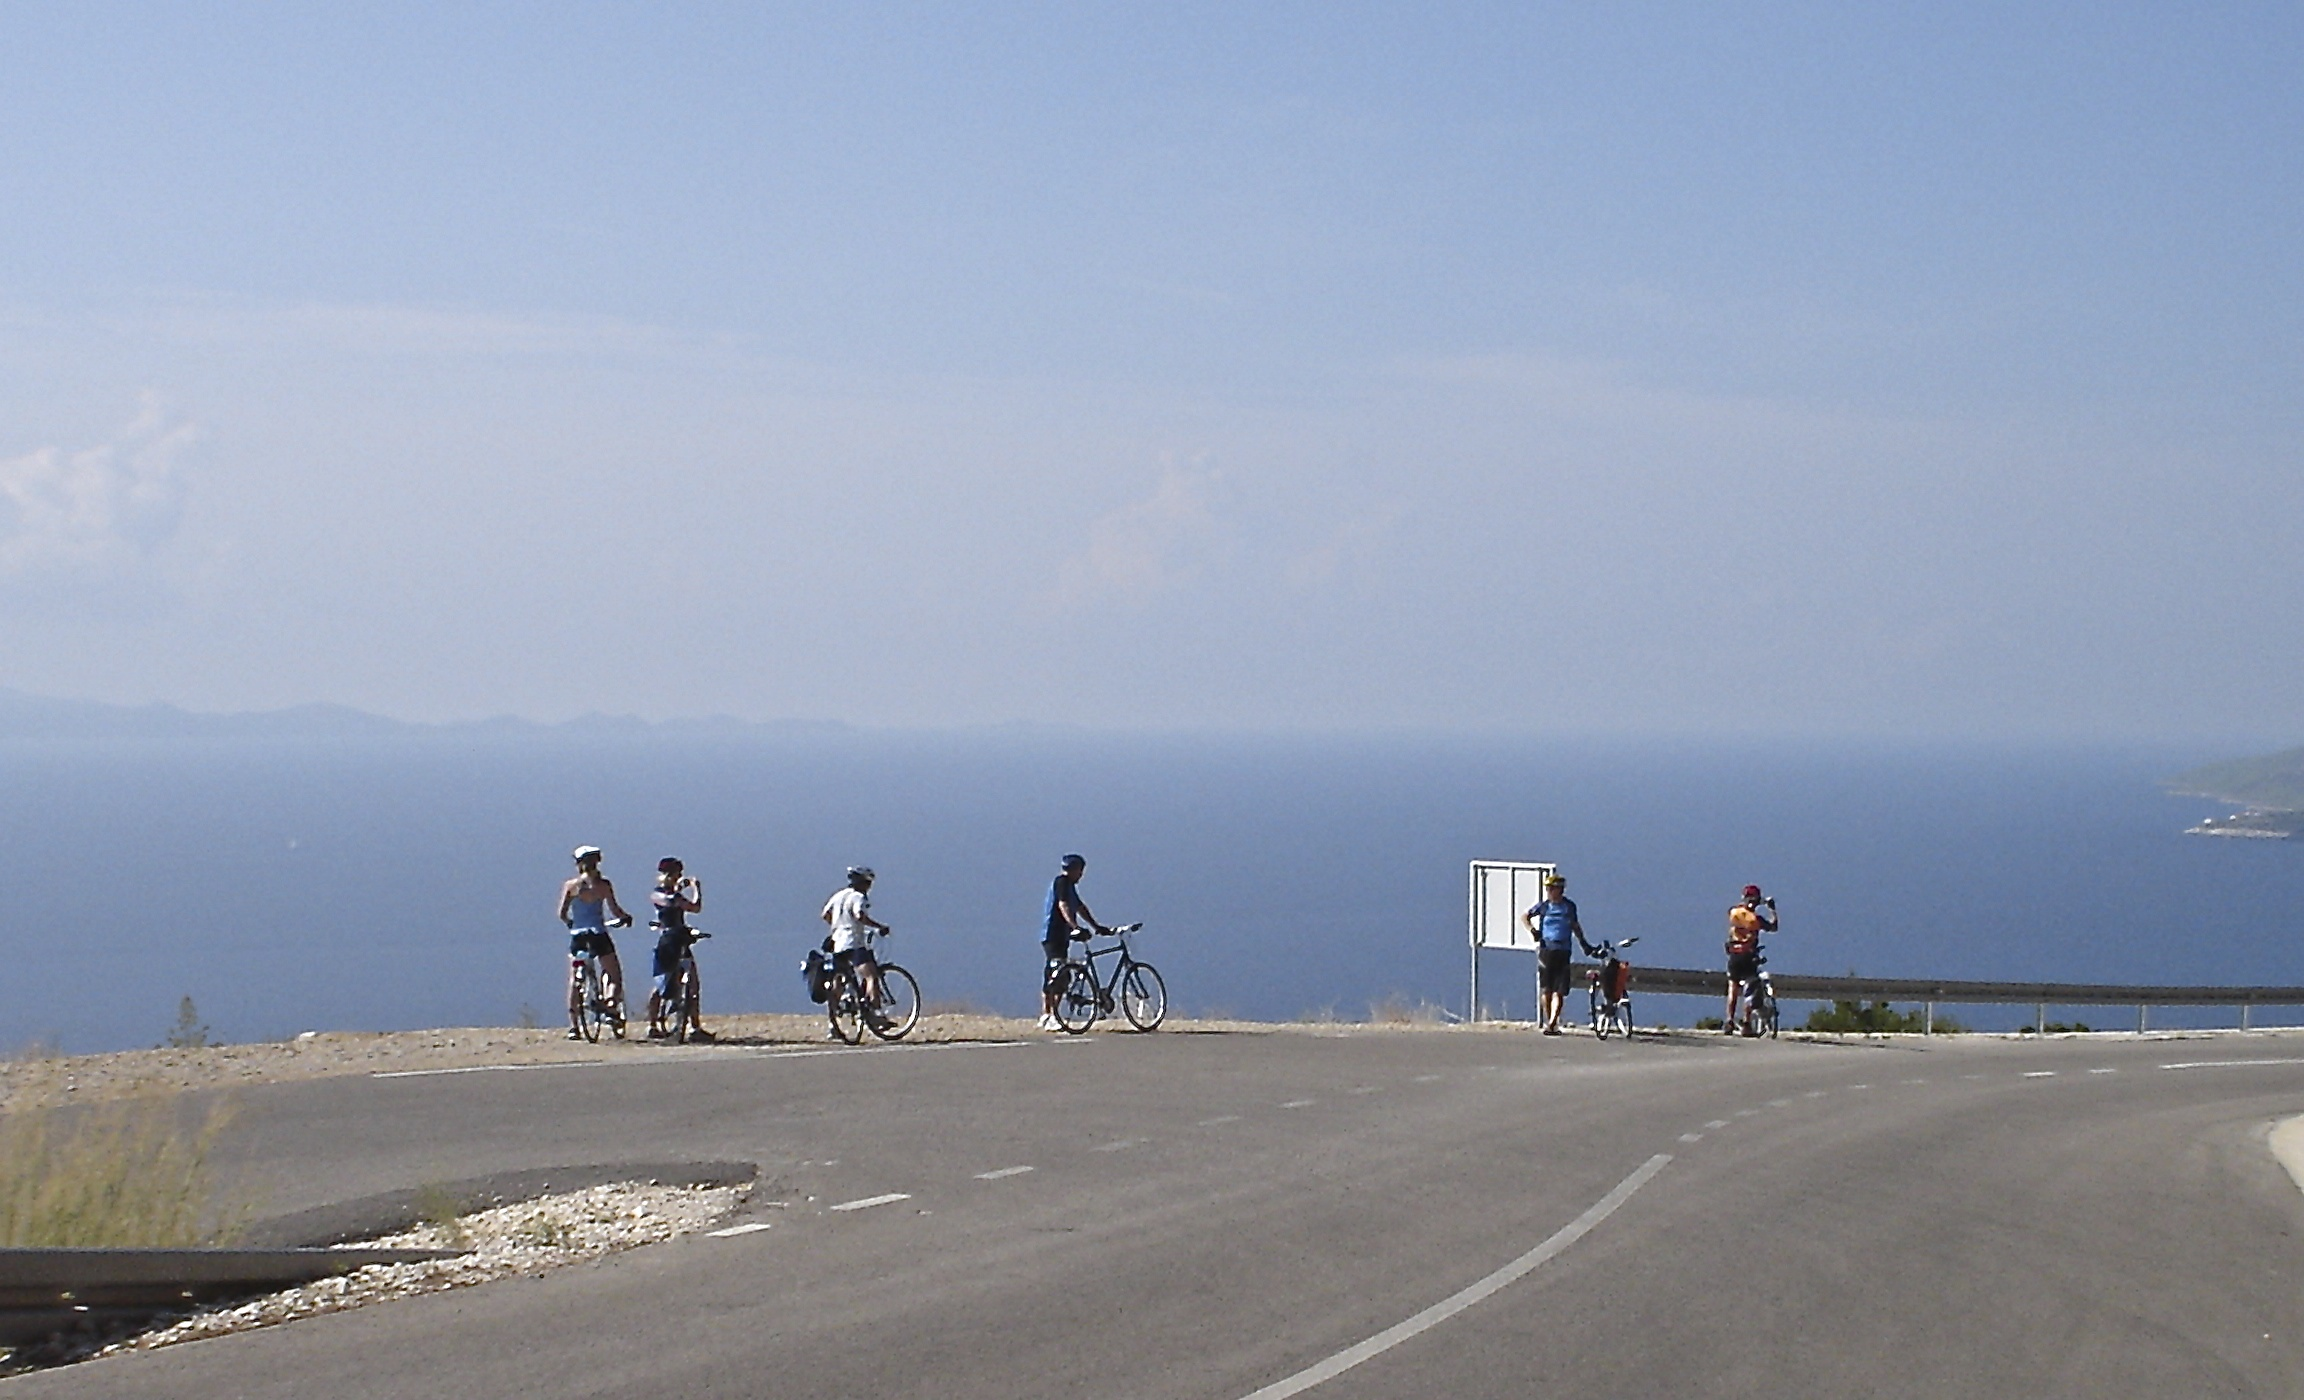 Croatia south dalmatia bike tour cyclists ocean view